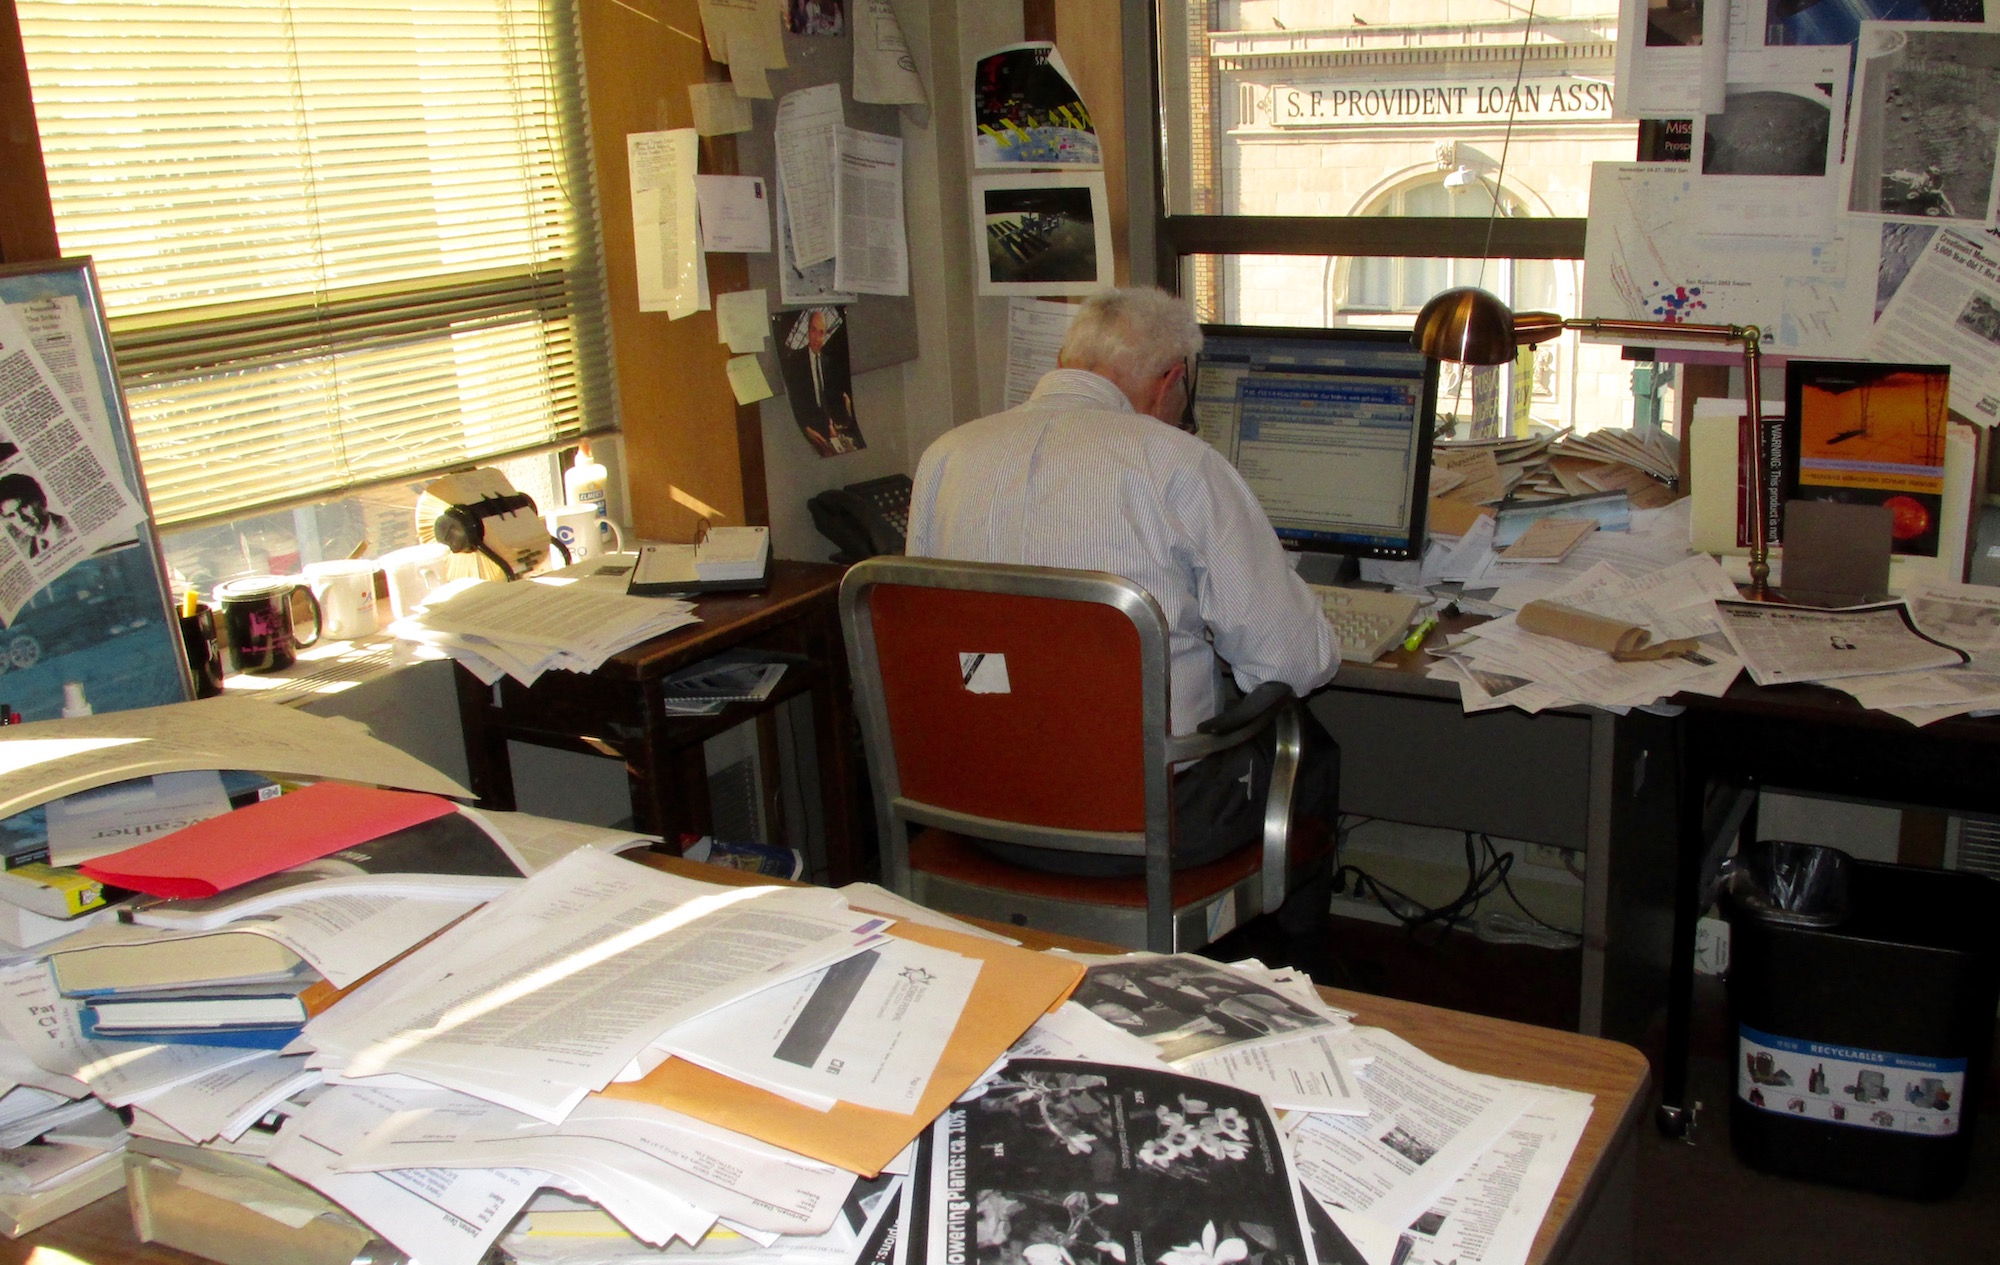 There was no mistaking Perlman's work space, piled high with research.